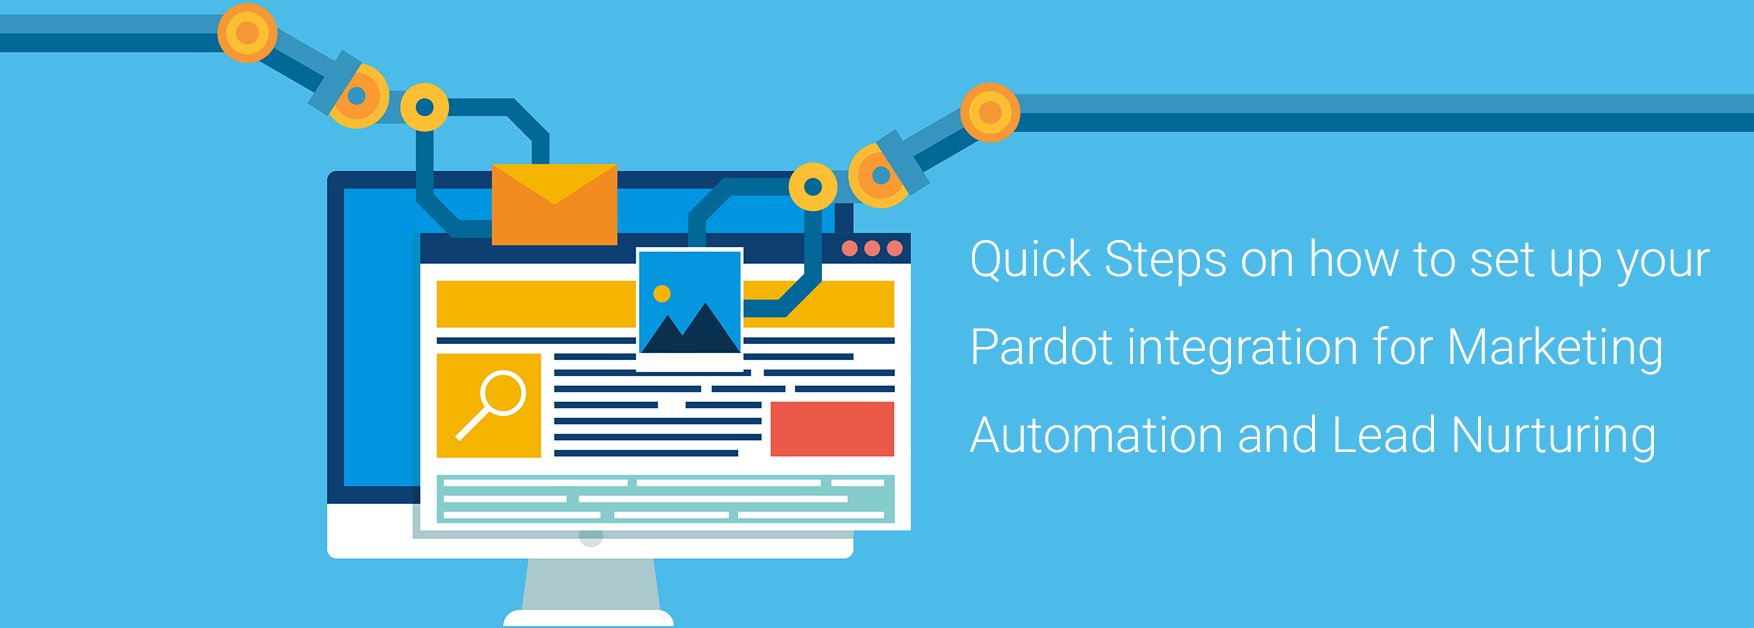 B2B Lead Nurturing With Pardot & Quick Steps On How To Set Up Your Pardot Integration